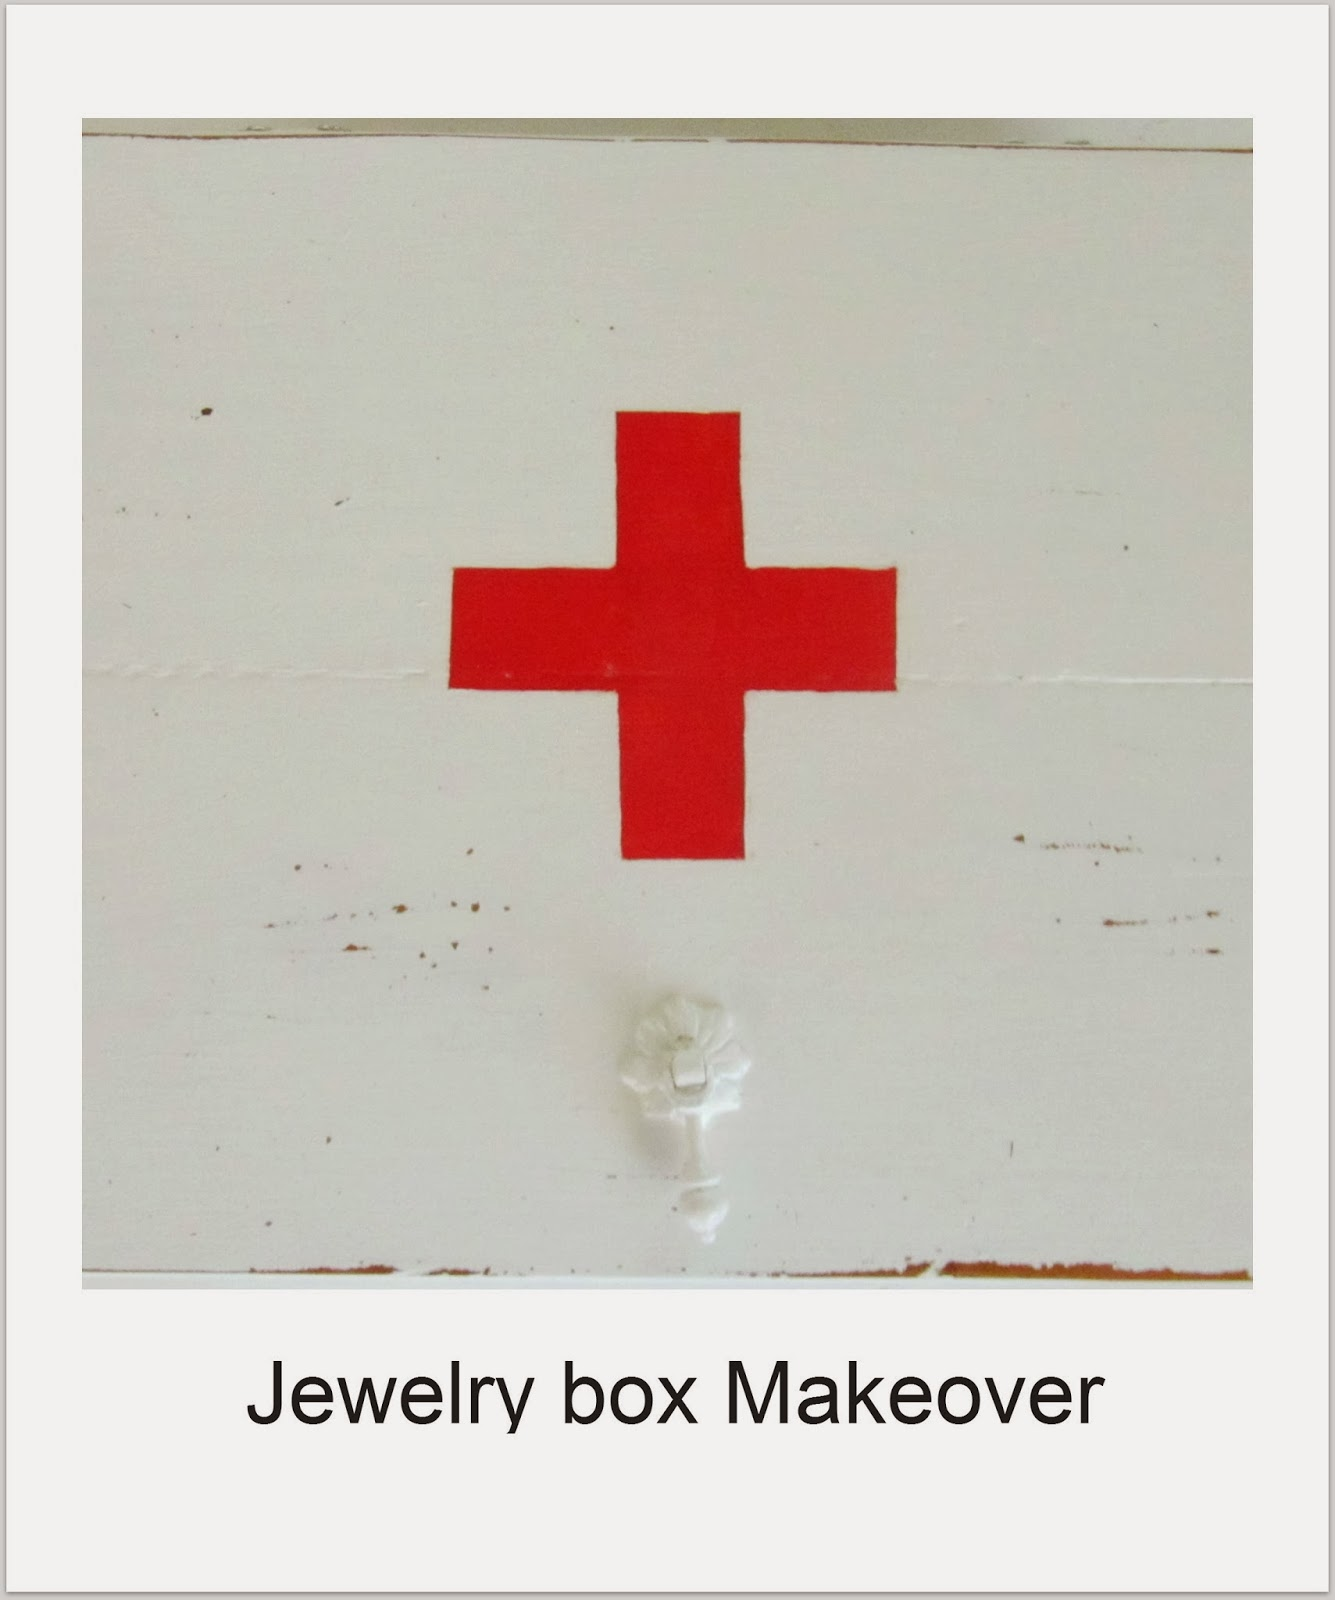 http://thewickerhouse.blogspot.com/2012/11/jewelry-box-makeover-in-case-you-miss-it.html